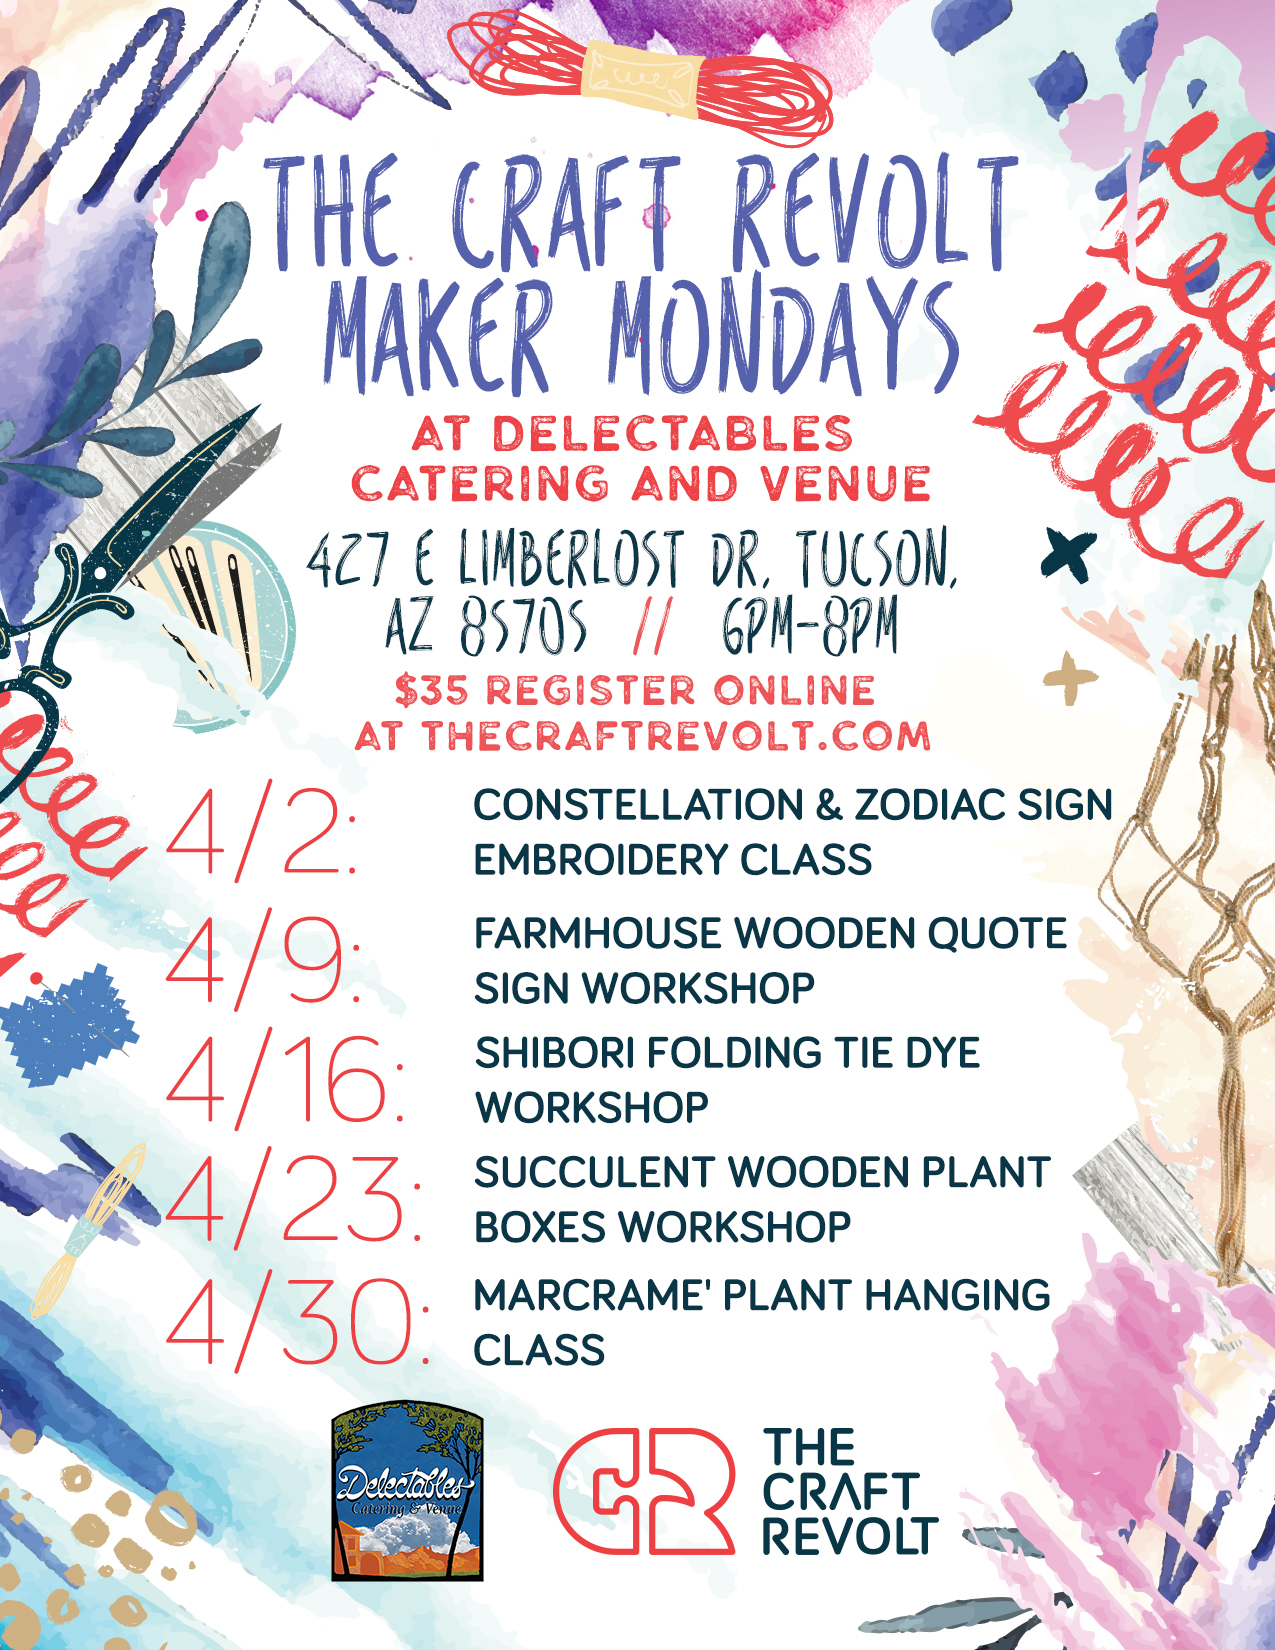 The craft revolt maker Mondays - Delectables